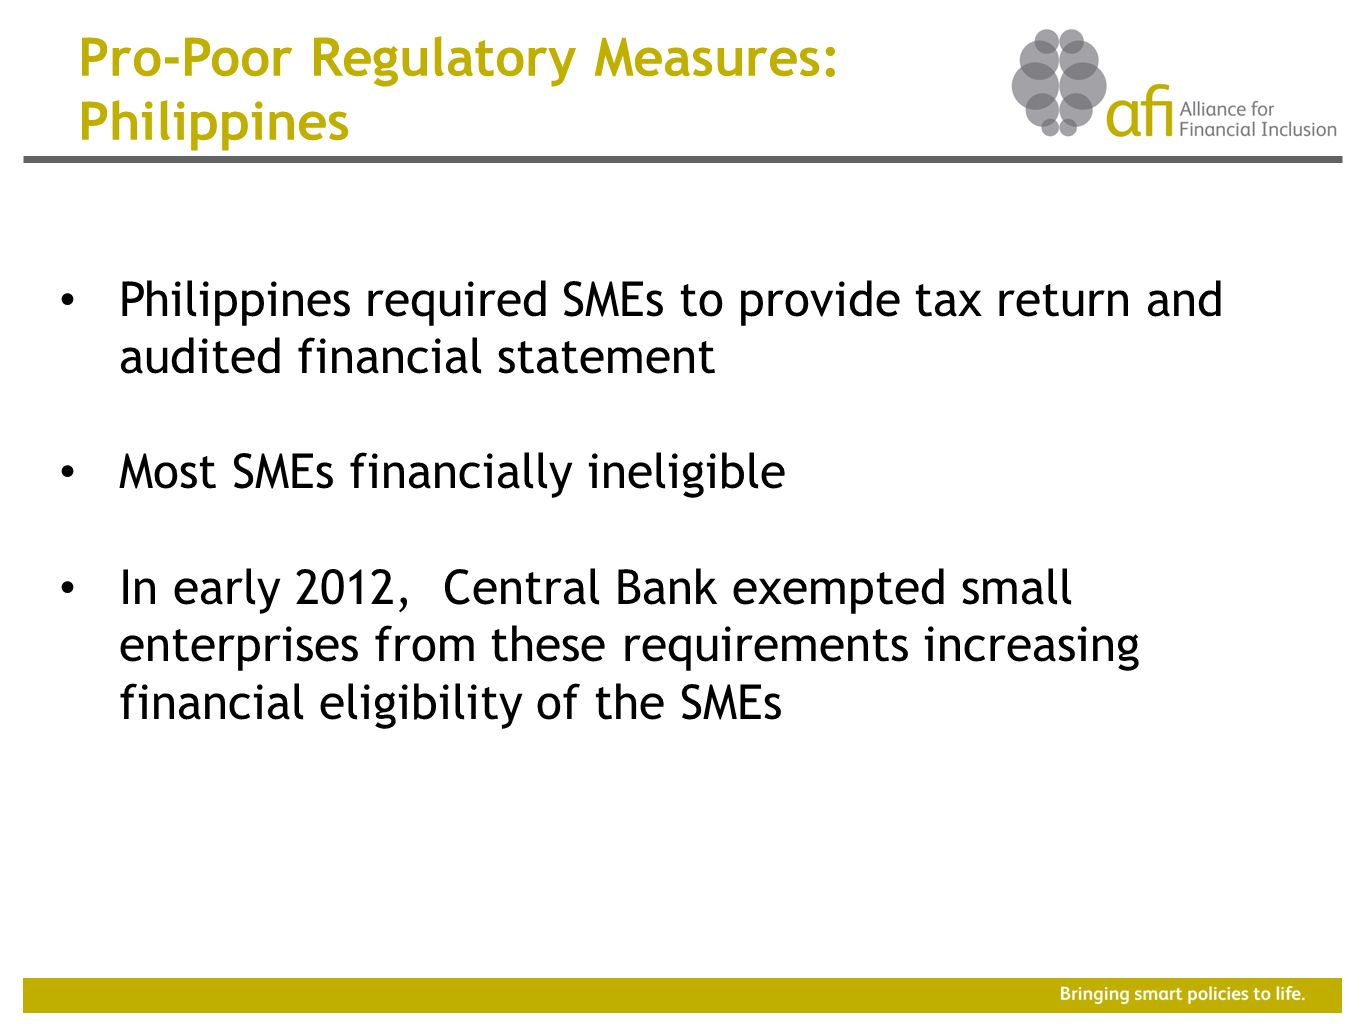 Pro-Poor Regulatory Measures: Philippines Philippines required SMEs to provide tax return and audited financial statement Most SMEs financially ineligible In early 2012, Central Bank exempted small enterprises from these requirements increasing financial eligibility of the SMEs